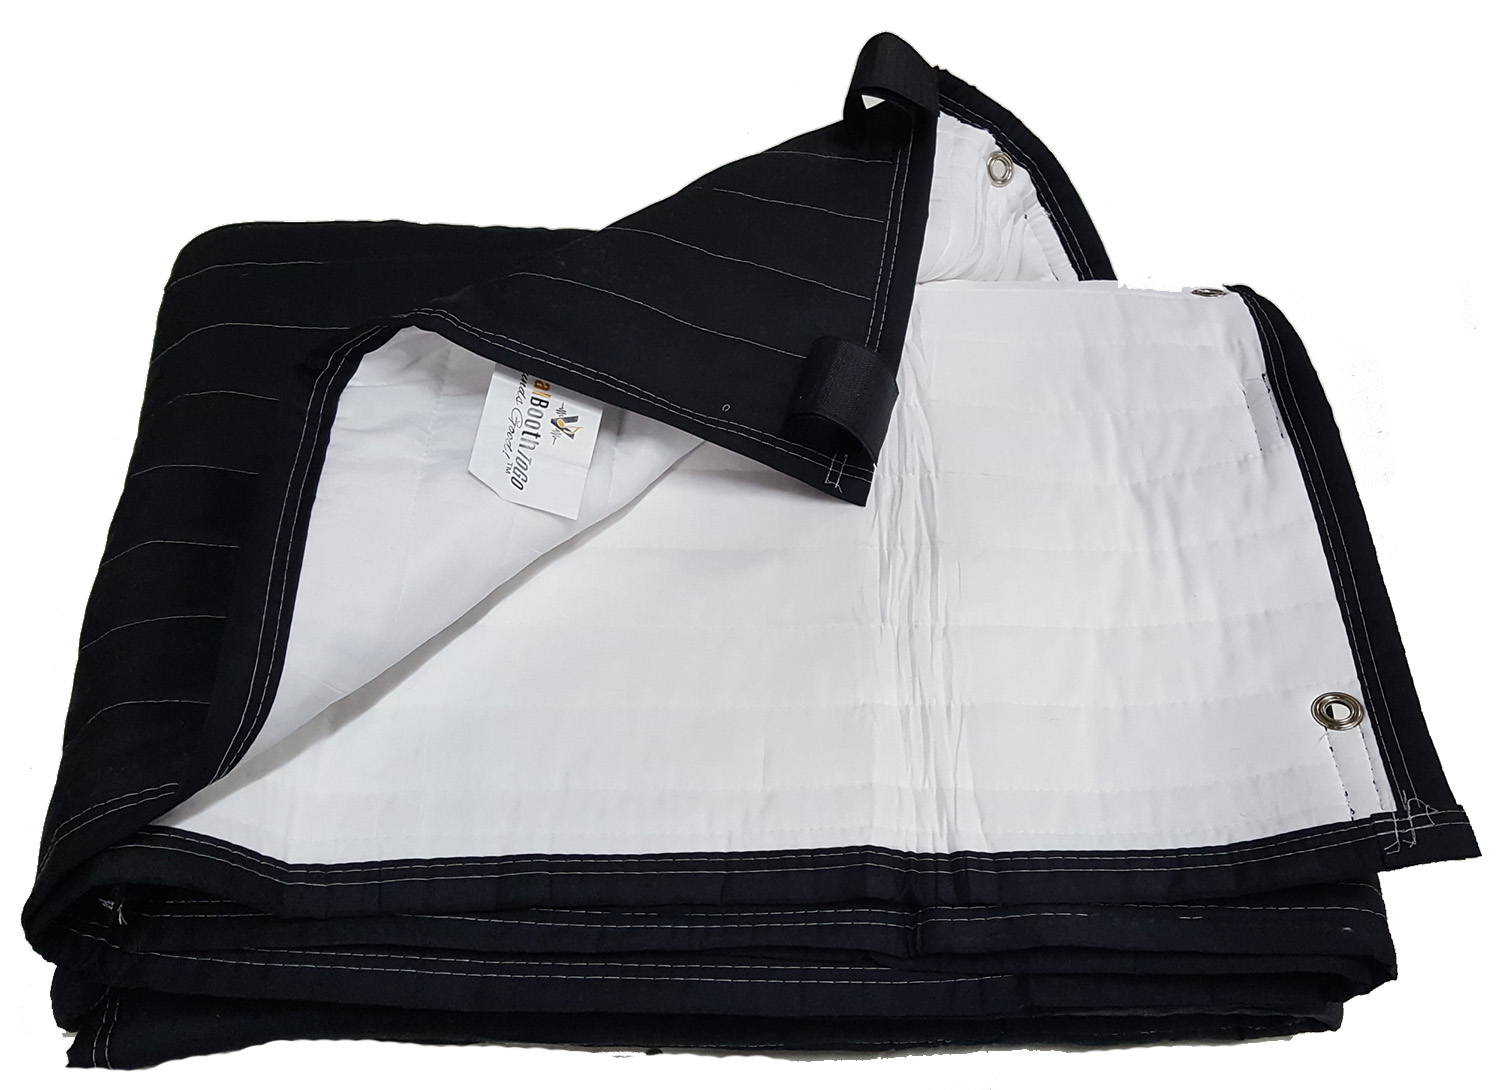 SPB-BG. Sound Booth Blankets Producers Choice- White-Black. Size 80x80 with Grommets and Velcro ...